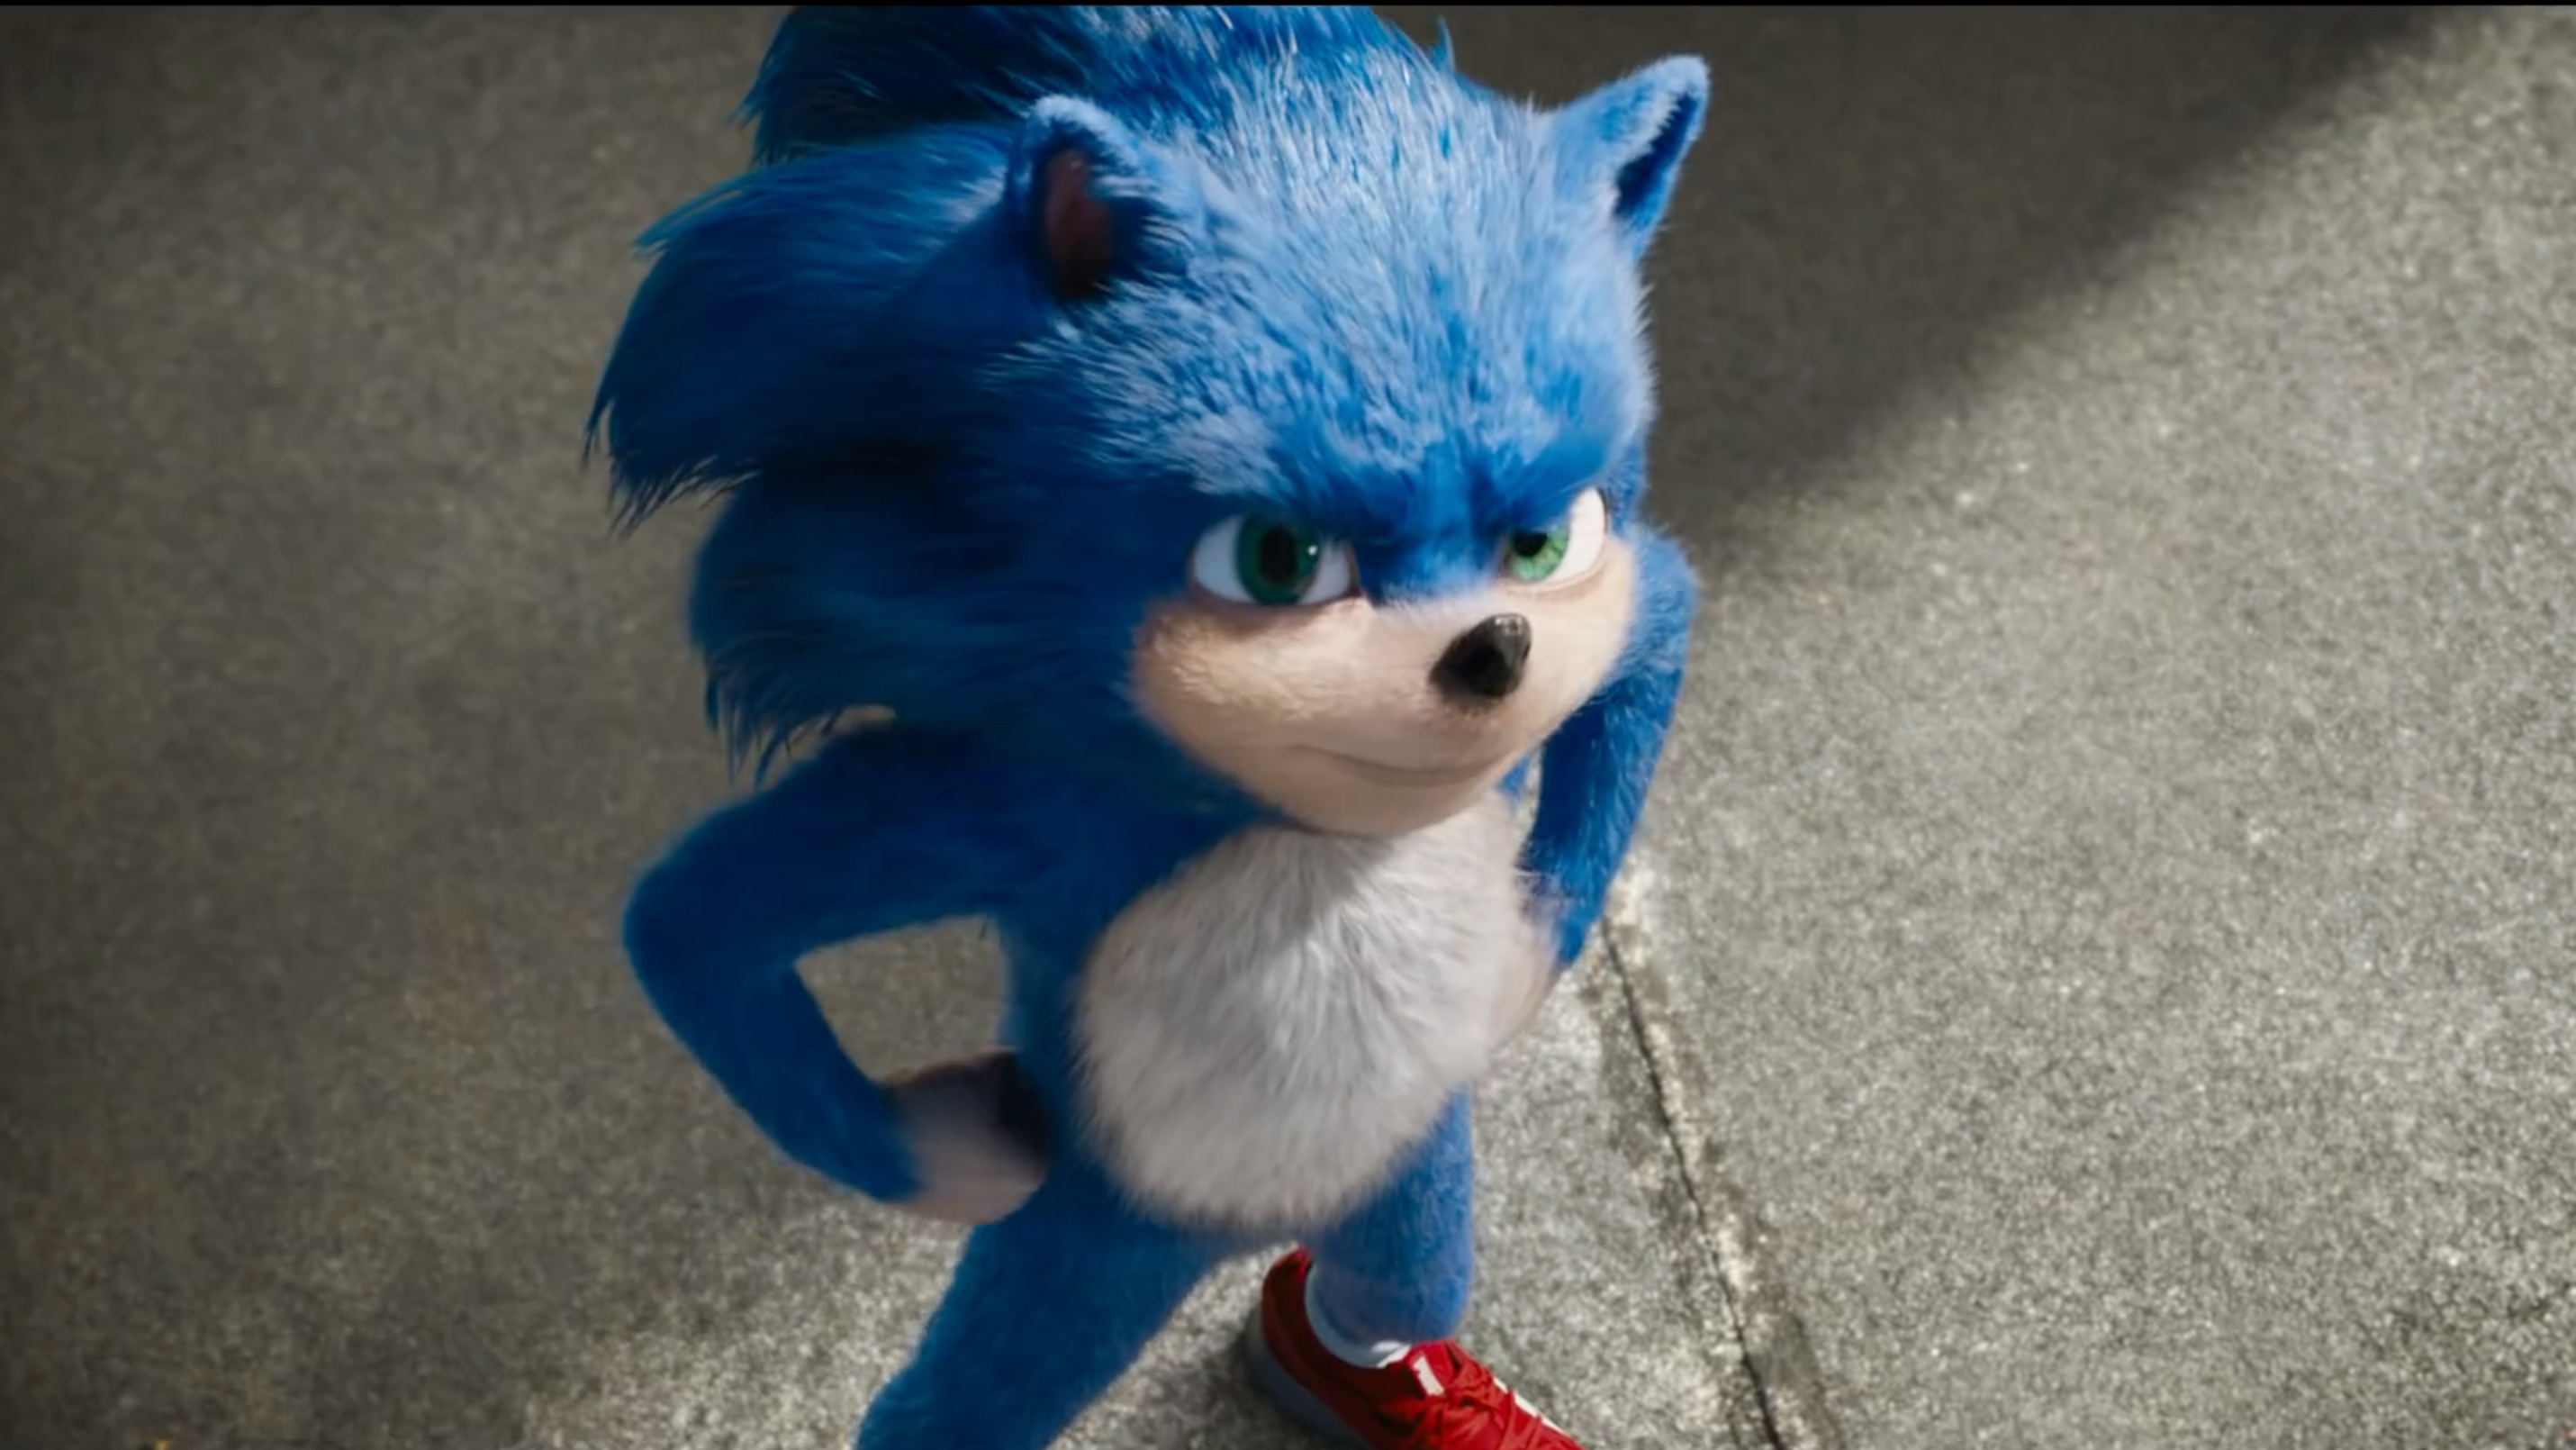 Sonic The Hedgehog Movie Delayed To 2020 To Fix Sonic S Look